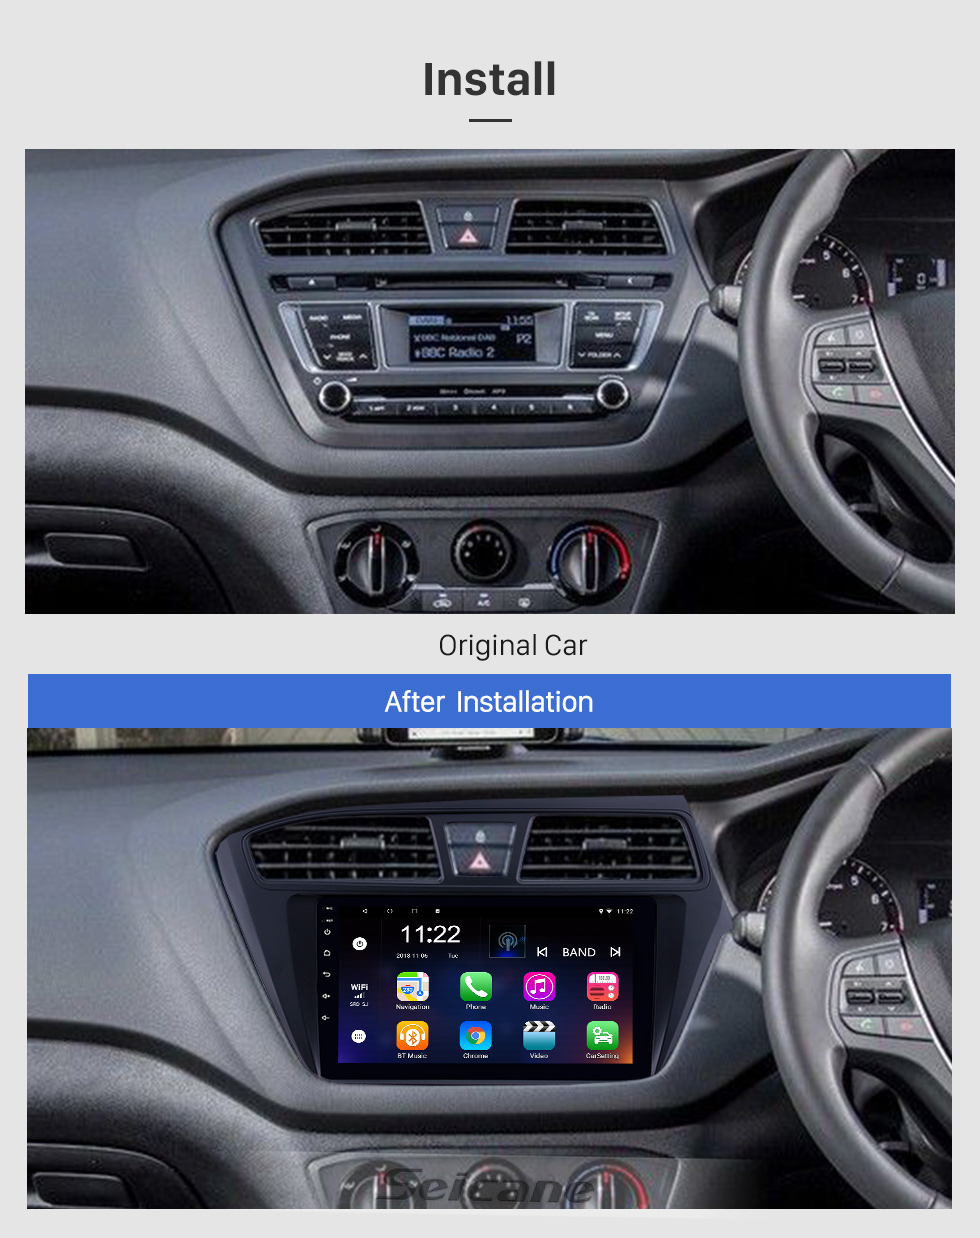 Seicane 2014-2017 Hyundai i20 RHD 9 inch Android 8.1 HD Touchscreen Bluetooth Radio GPS Navigation Stereo USB AUX support Carplay 3G WIFI Mirror Link